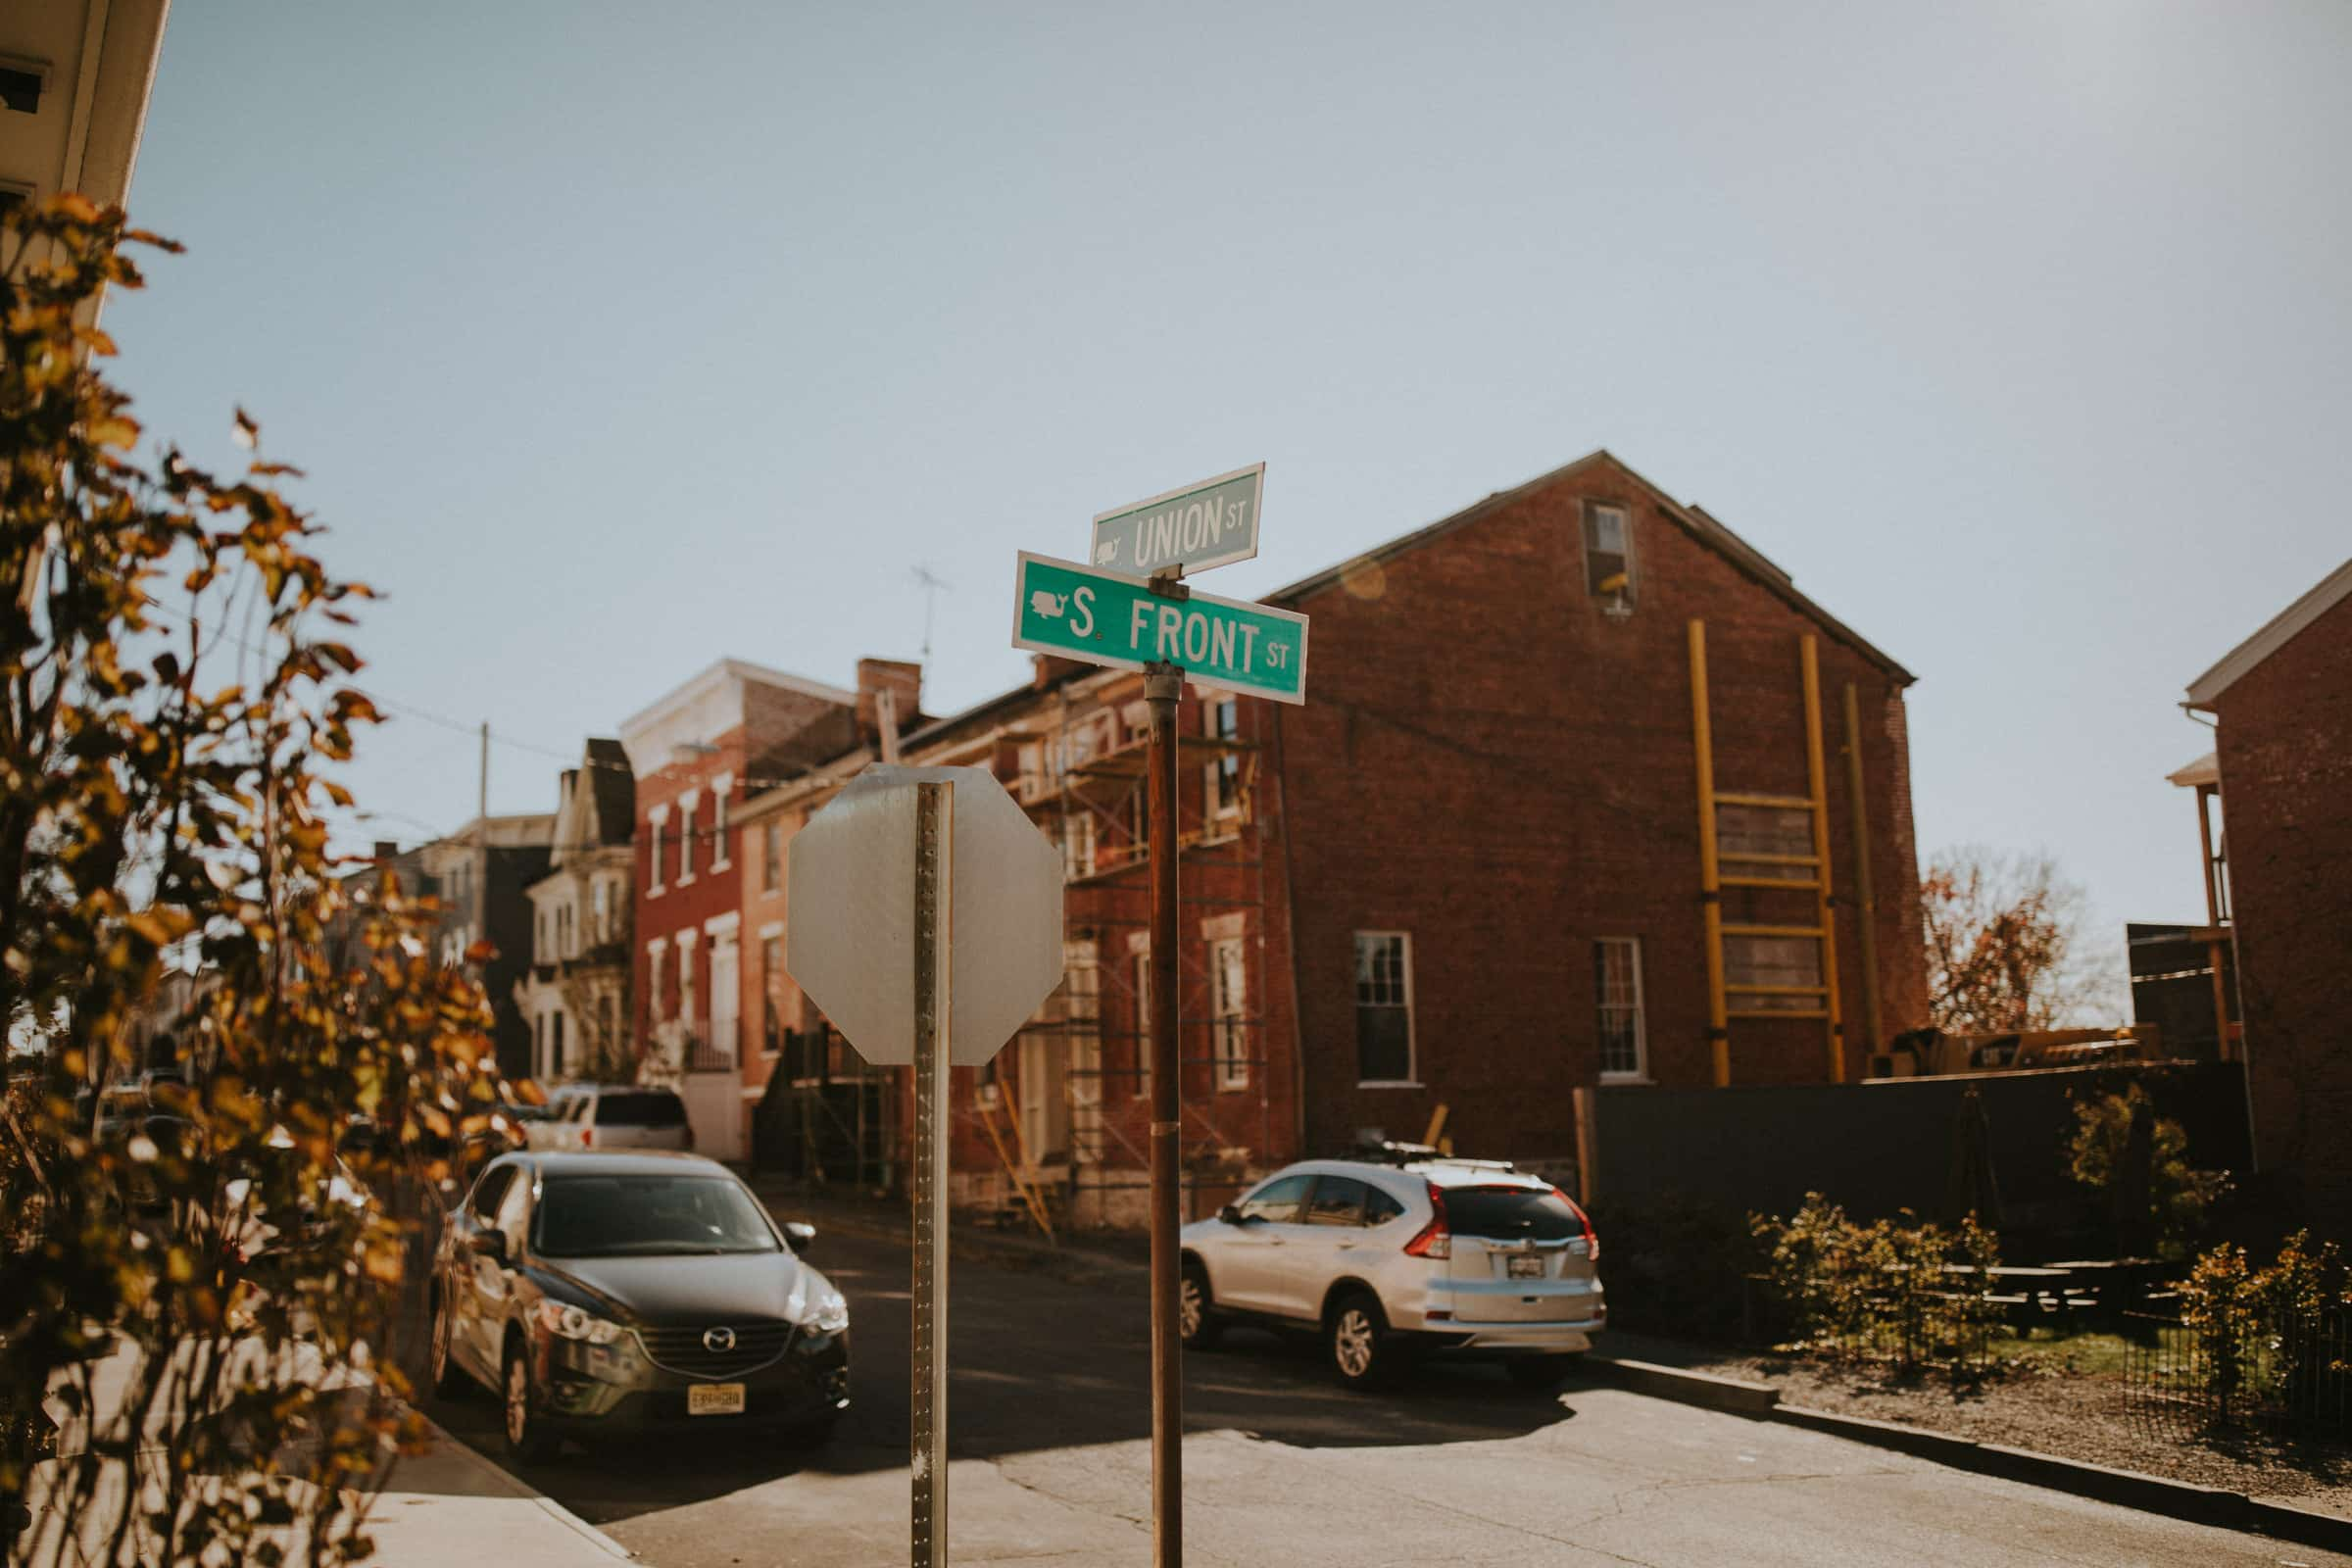 This pictures shows the Union Street in Brooklyn.